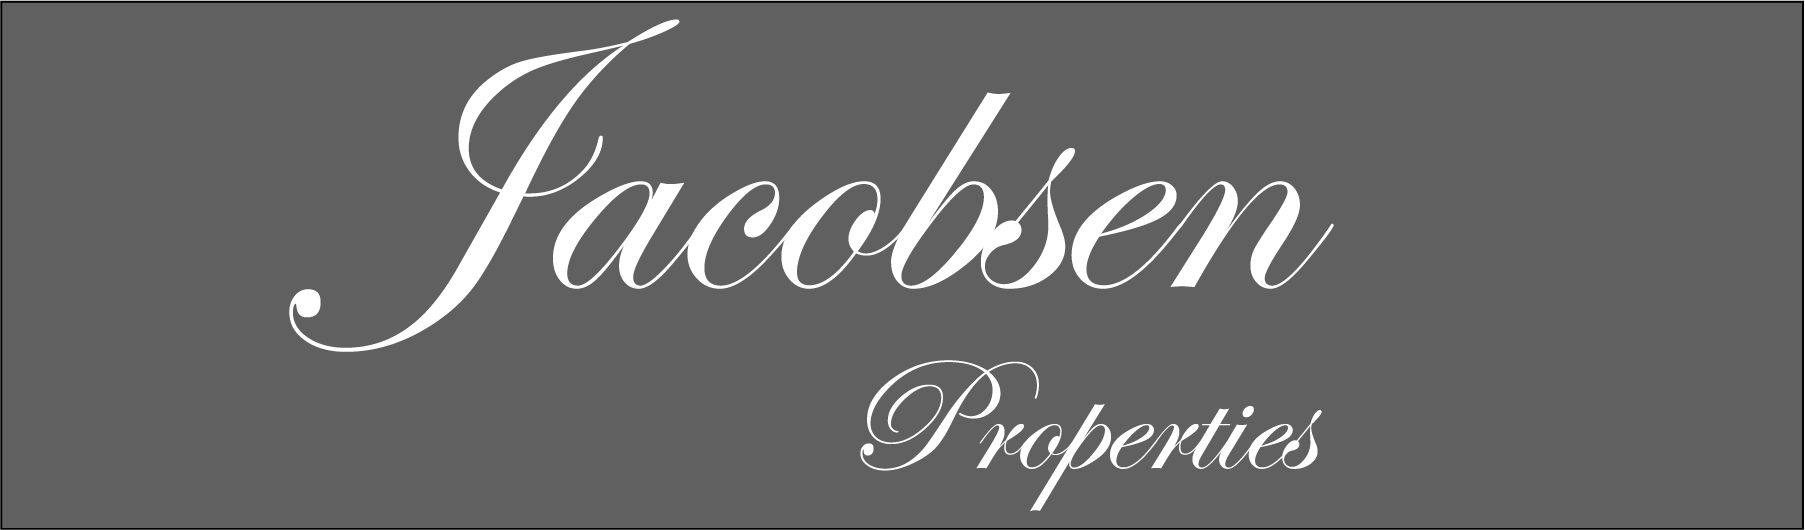 Jacobsen Properties